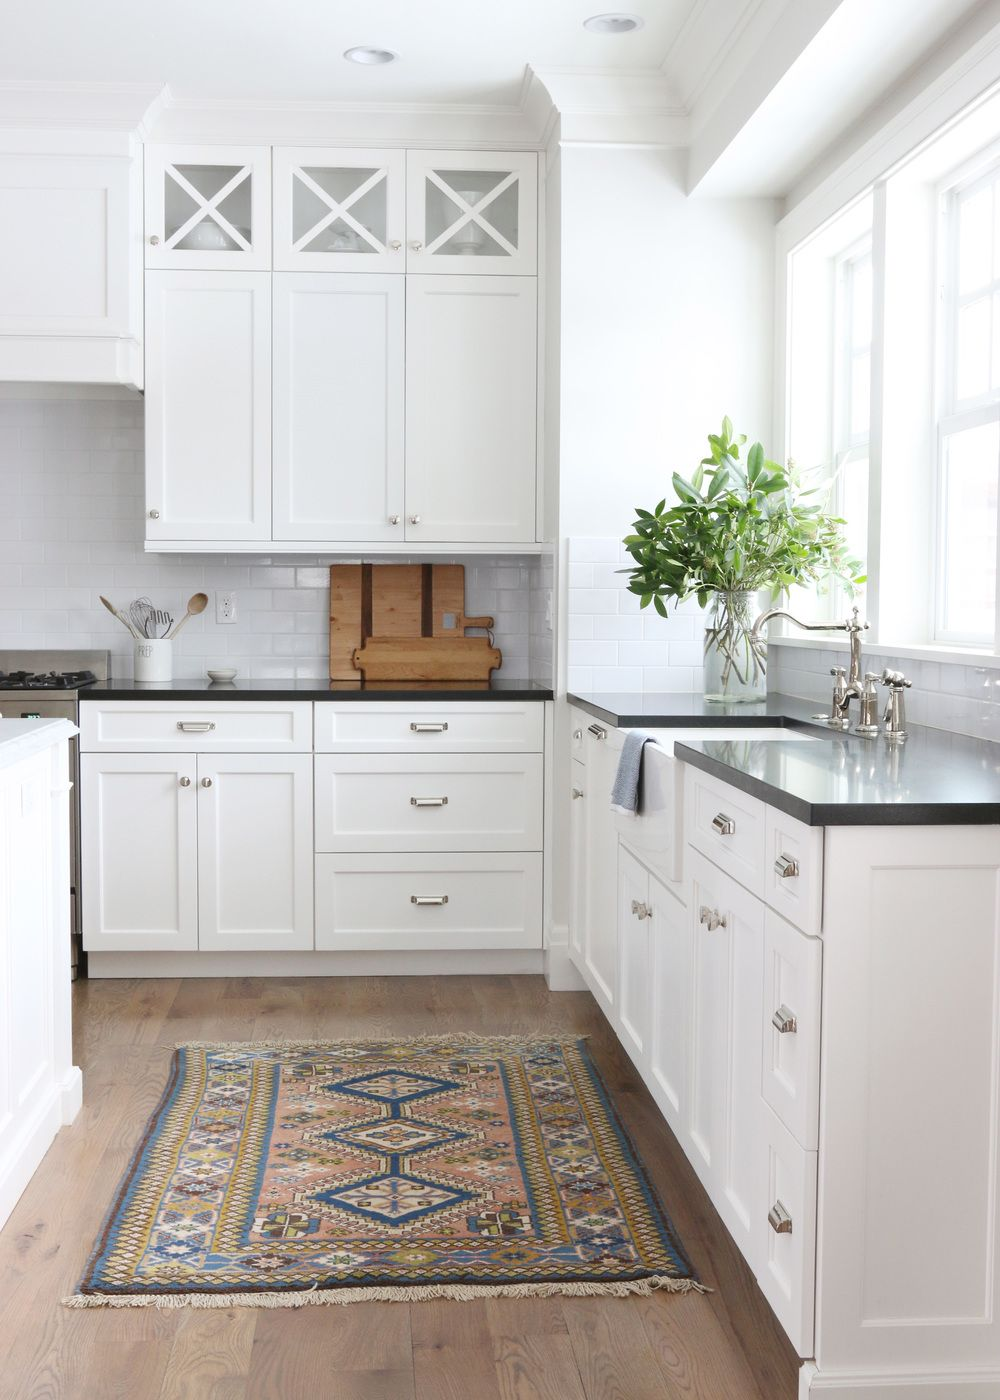 The Midway House Kitchen Kitchen Inspirations Home Kitchens